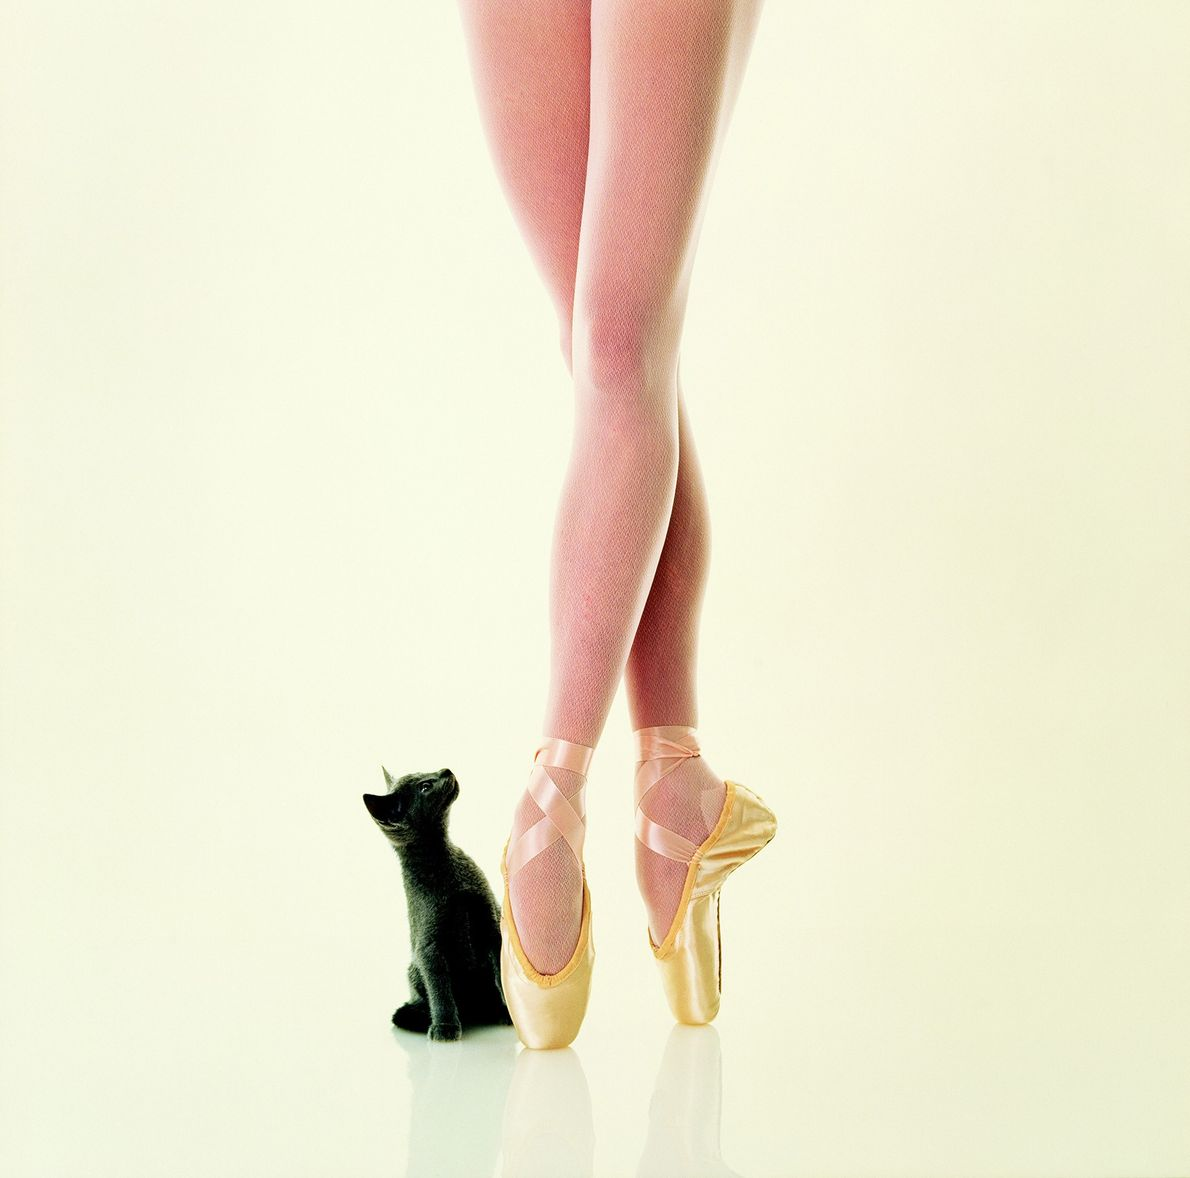 According to the 1997 National Geographic in which this photo ran, a cat's paw pads provide ...